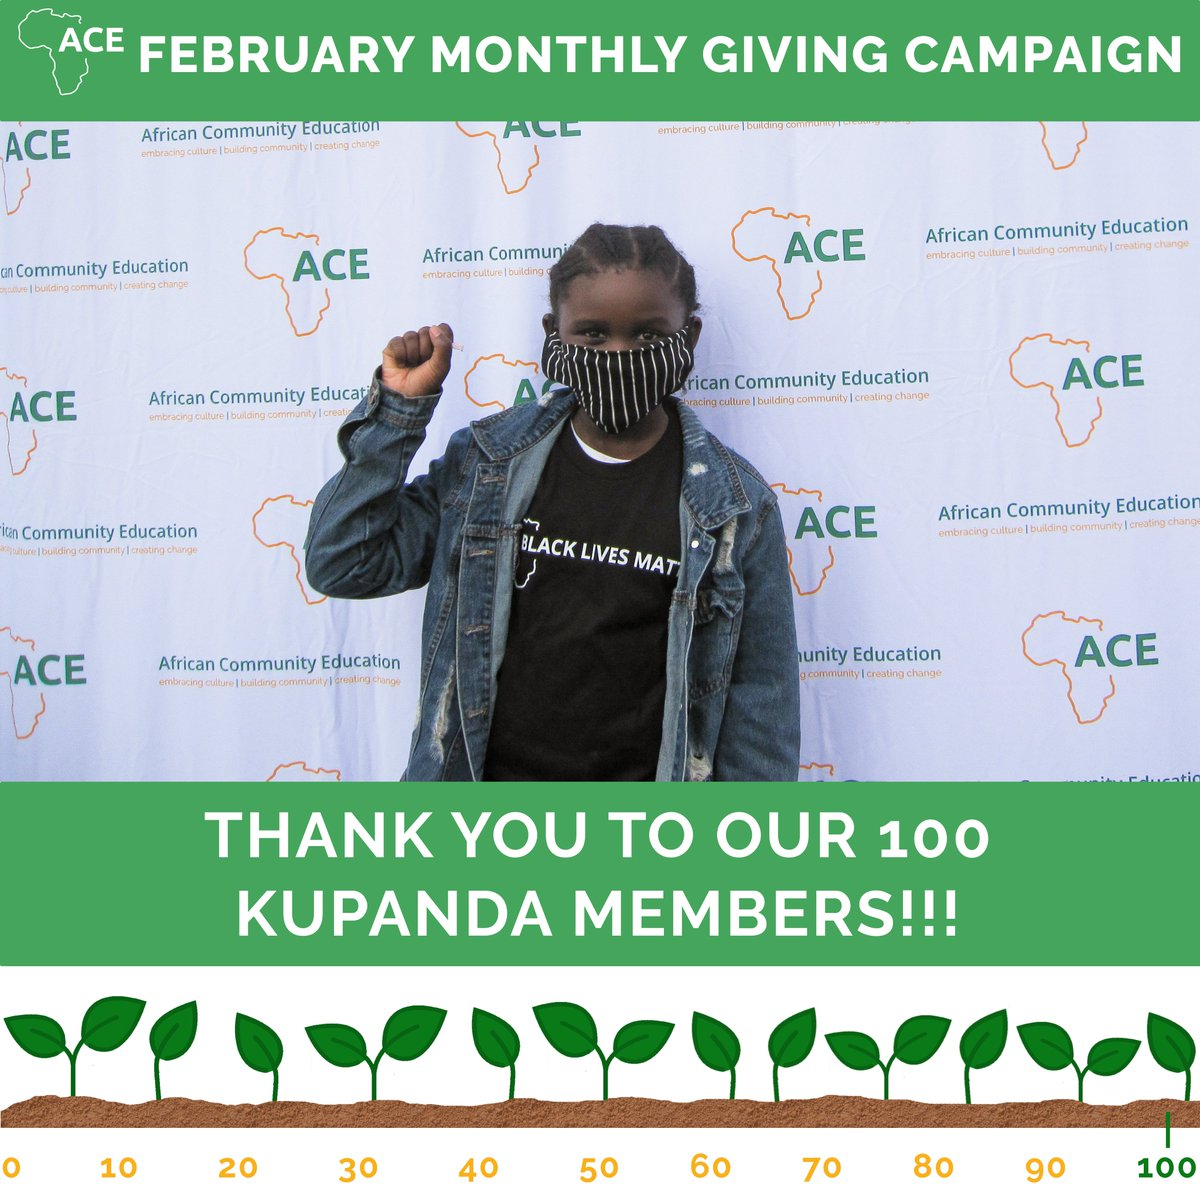 Thank you to everyone who made this possible. When @aceworcester launched our Monthly Giving Community in 2018, we barely had 100 donors period. Never did I think we would have 100 MONTHLY donors less than 3 years later. https://t.co/8E4rHcQyGa